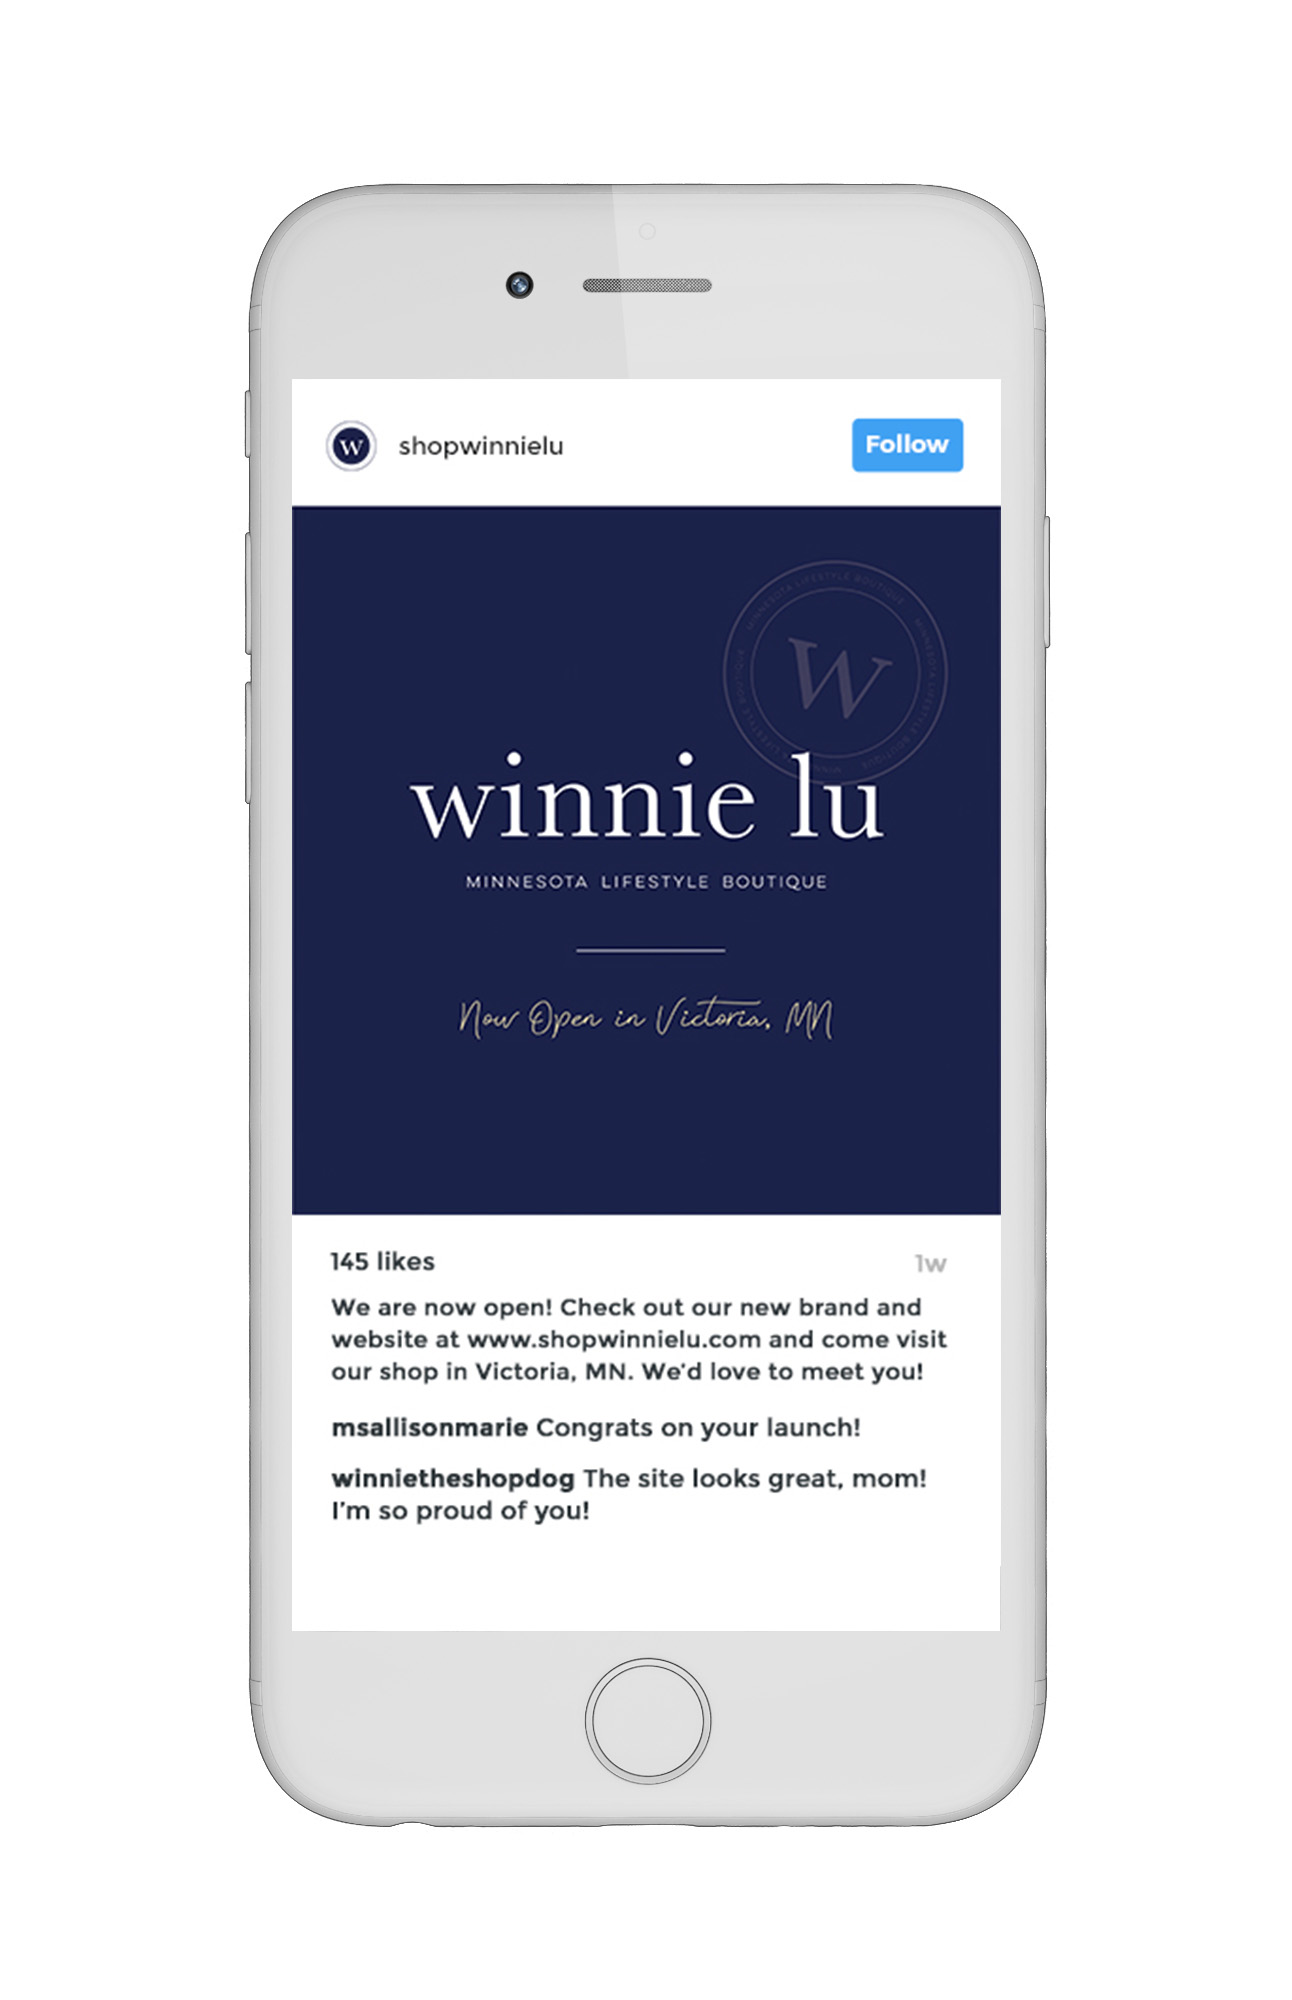 Winnie Lu Instagram Imagery for Brand Launch  |  Designed by AllieMarie Design